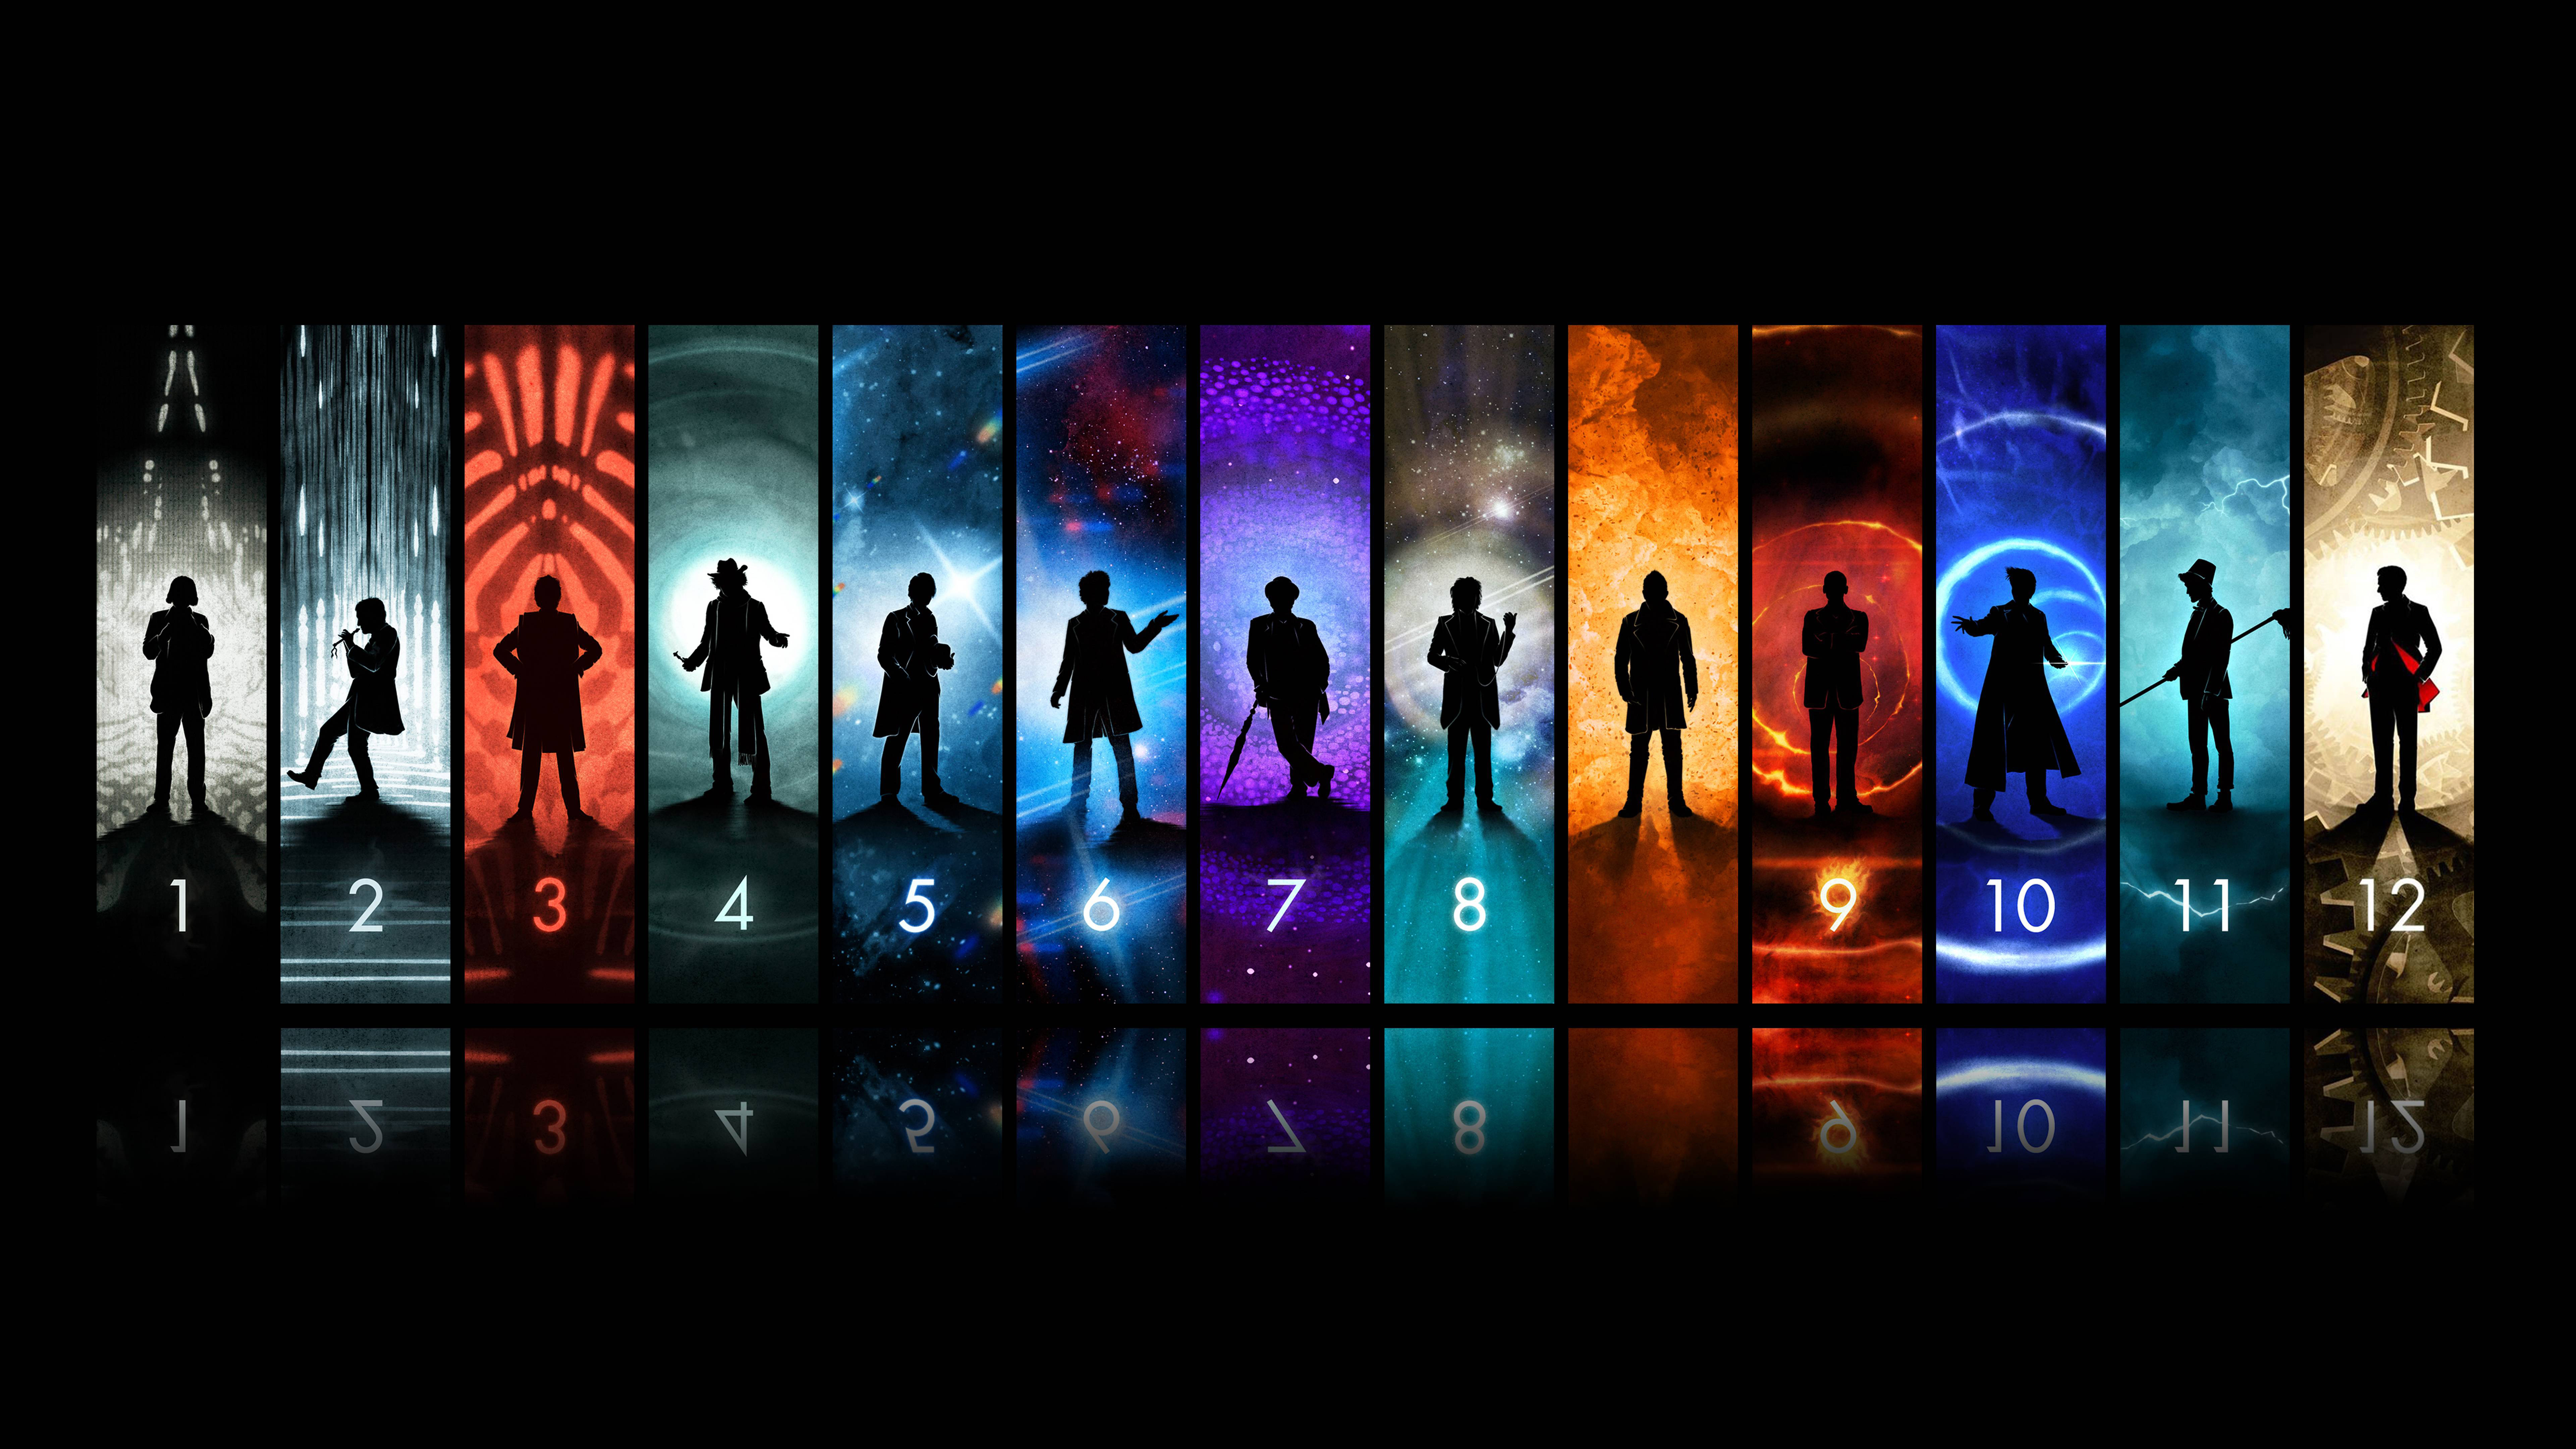 Cool Dual Screen   Wallpaper Images Pictures Wallpapers Wall 7680x4320